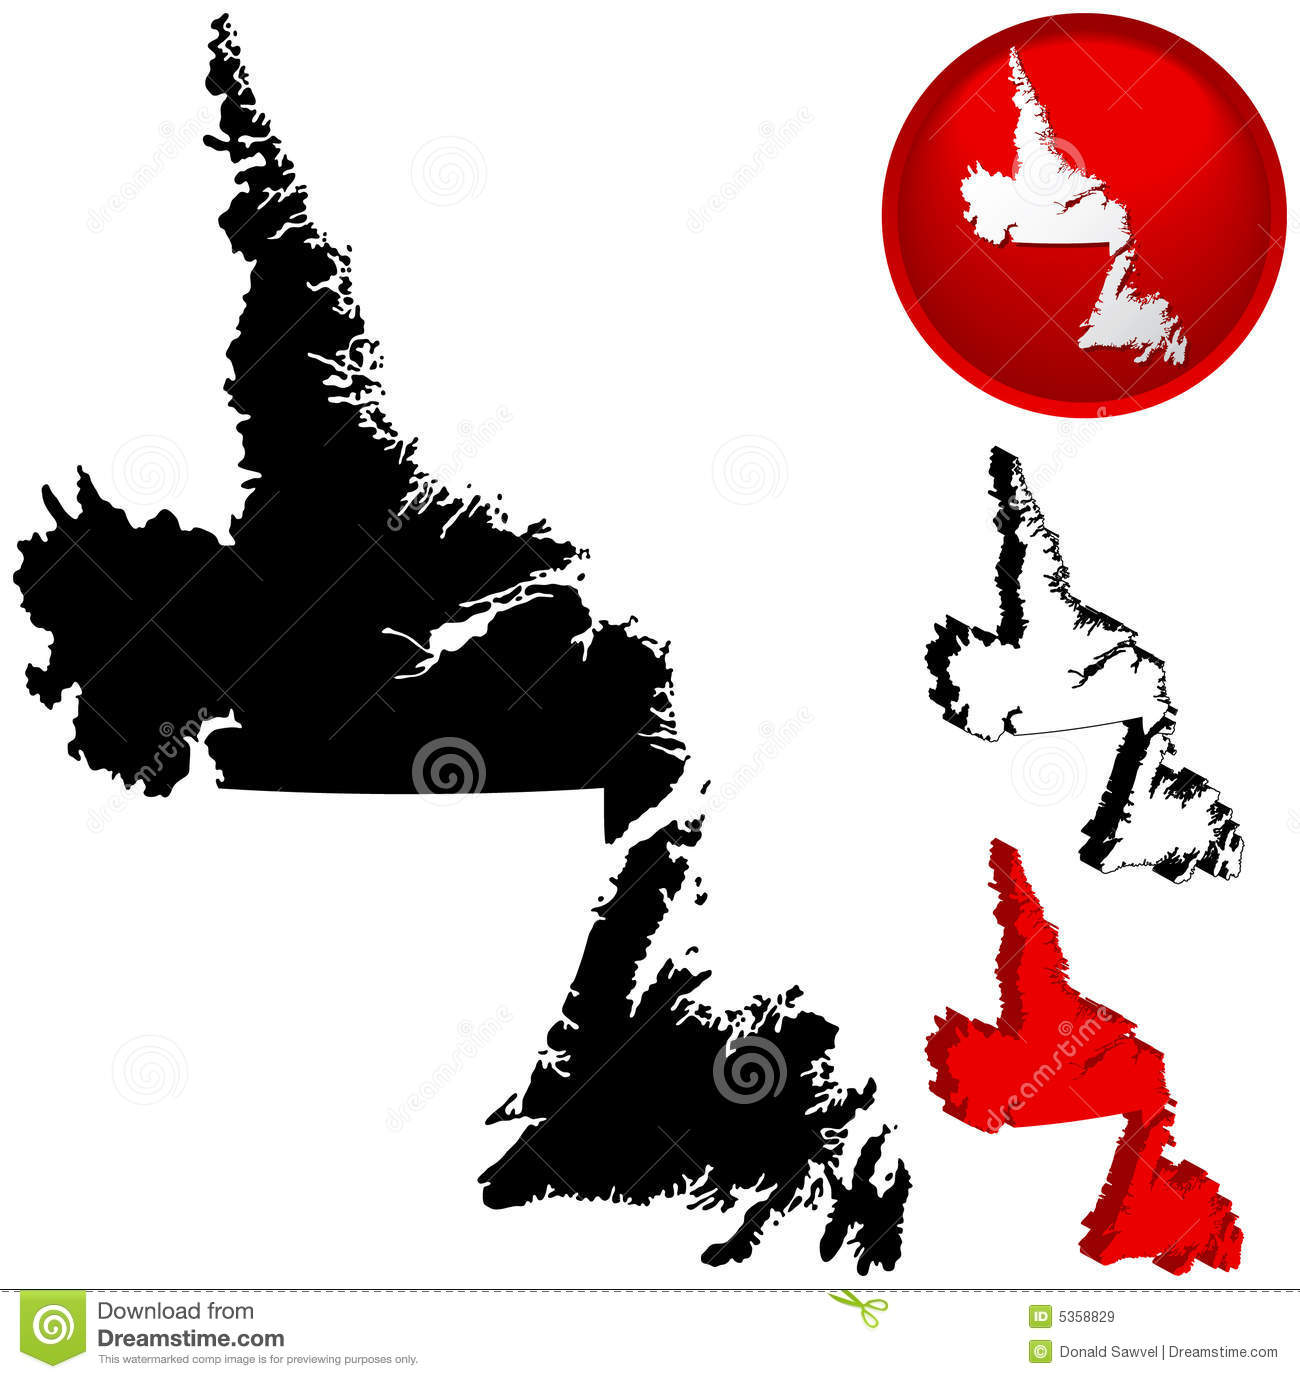 Newfoundland clipart #6, Download drawings